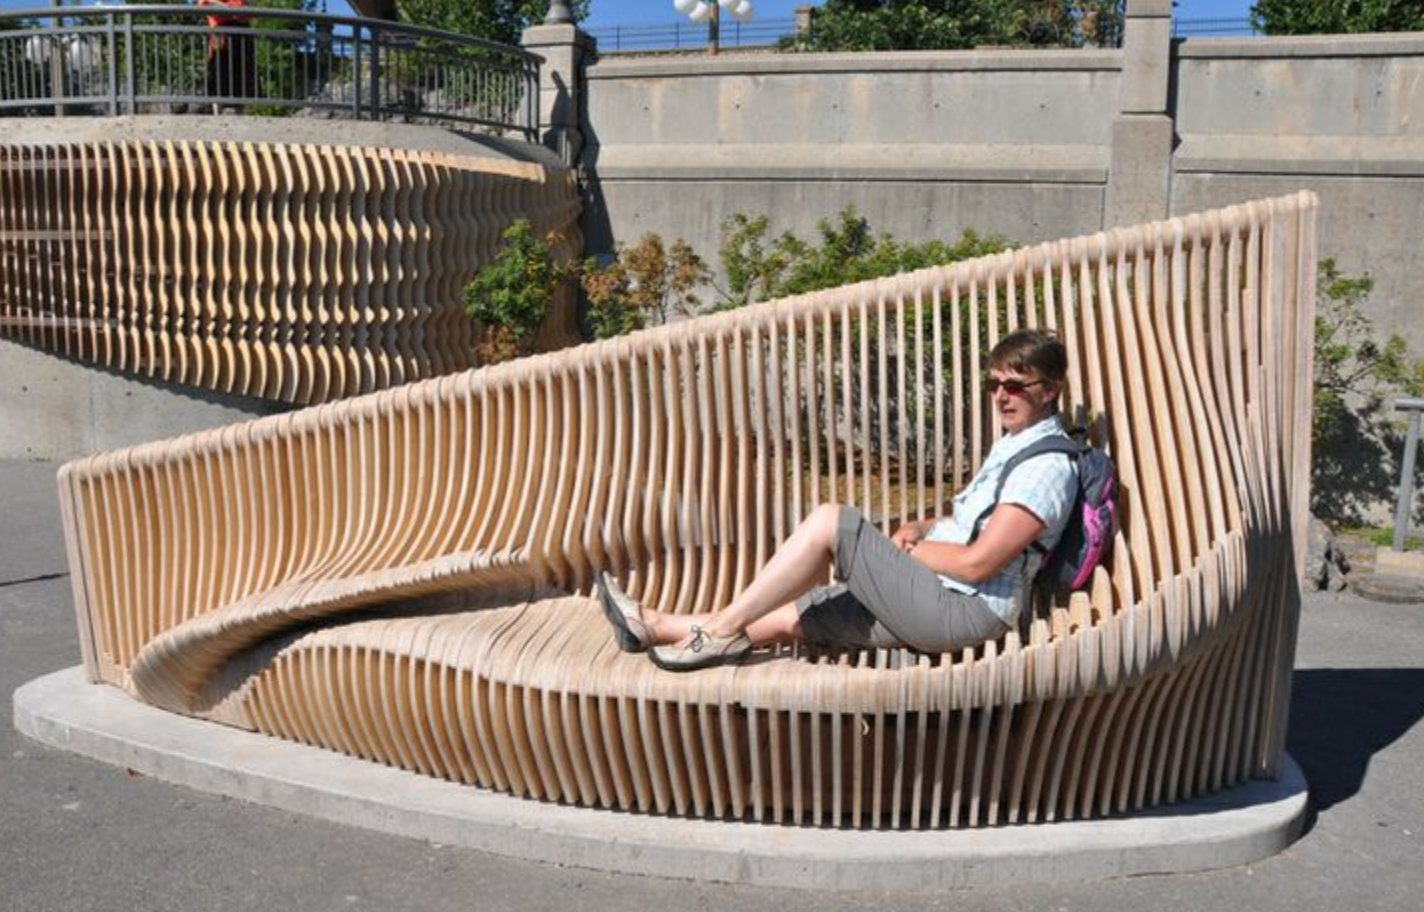 Pin By F X On City Spaces Urban Furniture Design Urban Furniture Landscape Design